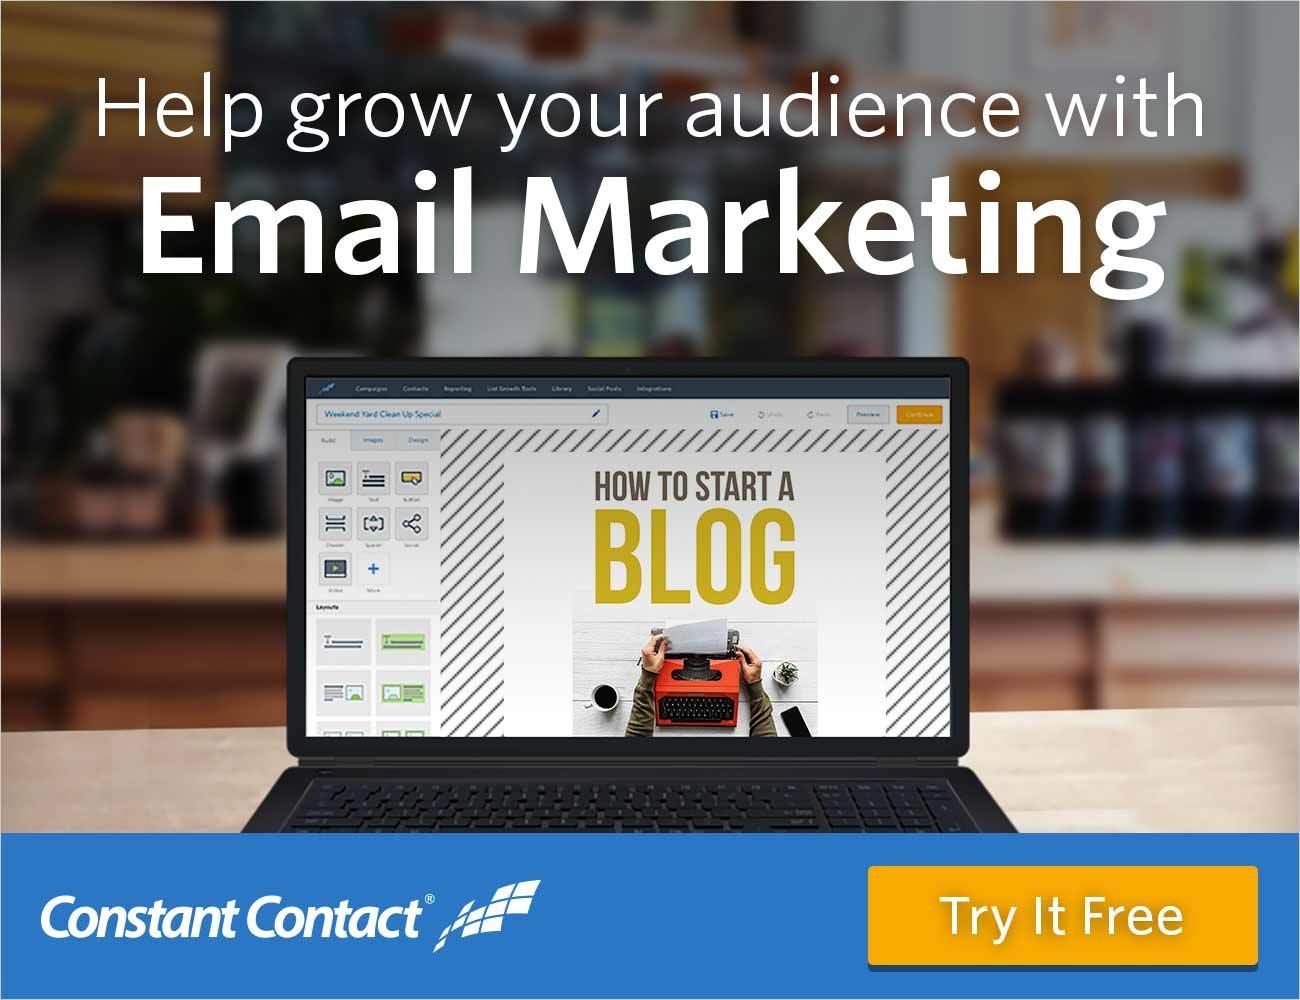 Help grow your audience with Constant Contact email marketing